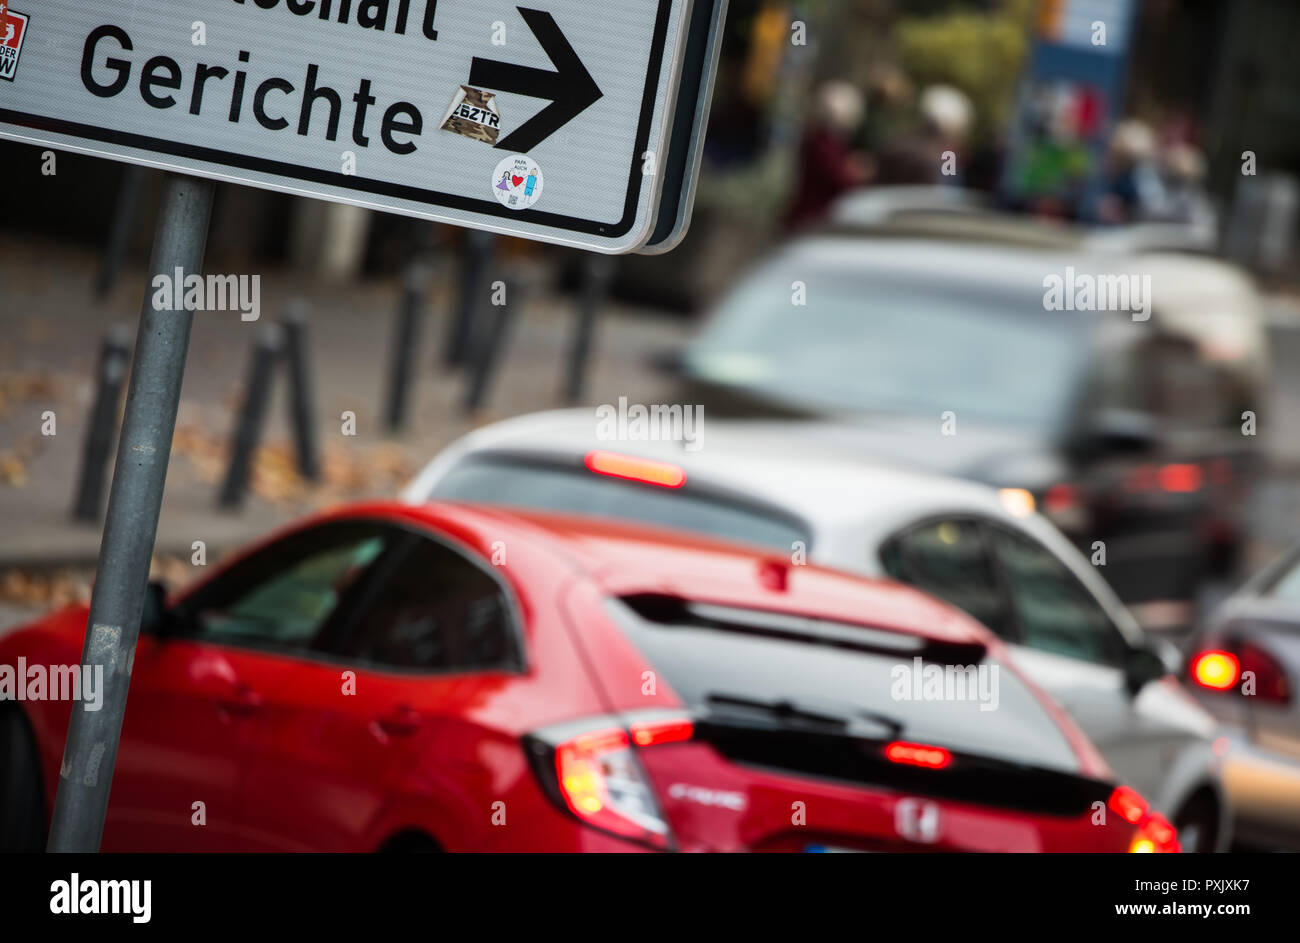 Mainz, Germany. 23rd Oct, 2018. Cars drive past a sign to the courthouse. Next Wednesday (24 October), the Administrative Court in Mainz will deal with a lawsuit filed by the German Environmental Aid (DUH) against the city of Mainz because of its plan for air pollution control and excessively high pollutant levels. NO2 can irritate the airways and eyes, disrupt lung function or lead to cardiovascular disease. Credit: Andreas Arnold/dpa/Alamy Live News - Stock Image